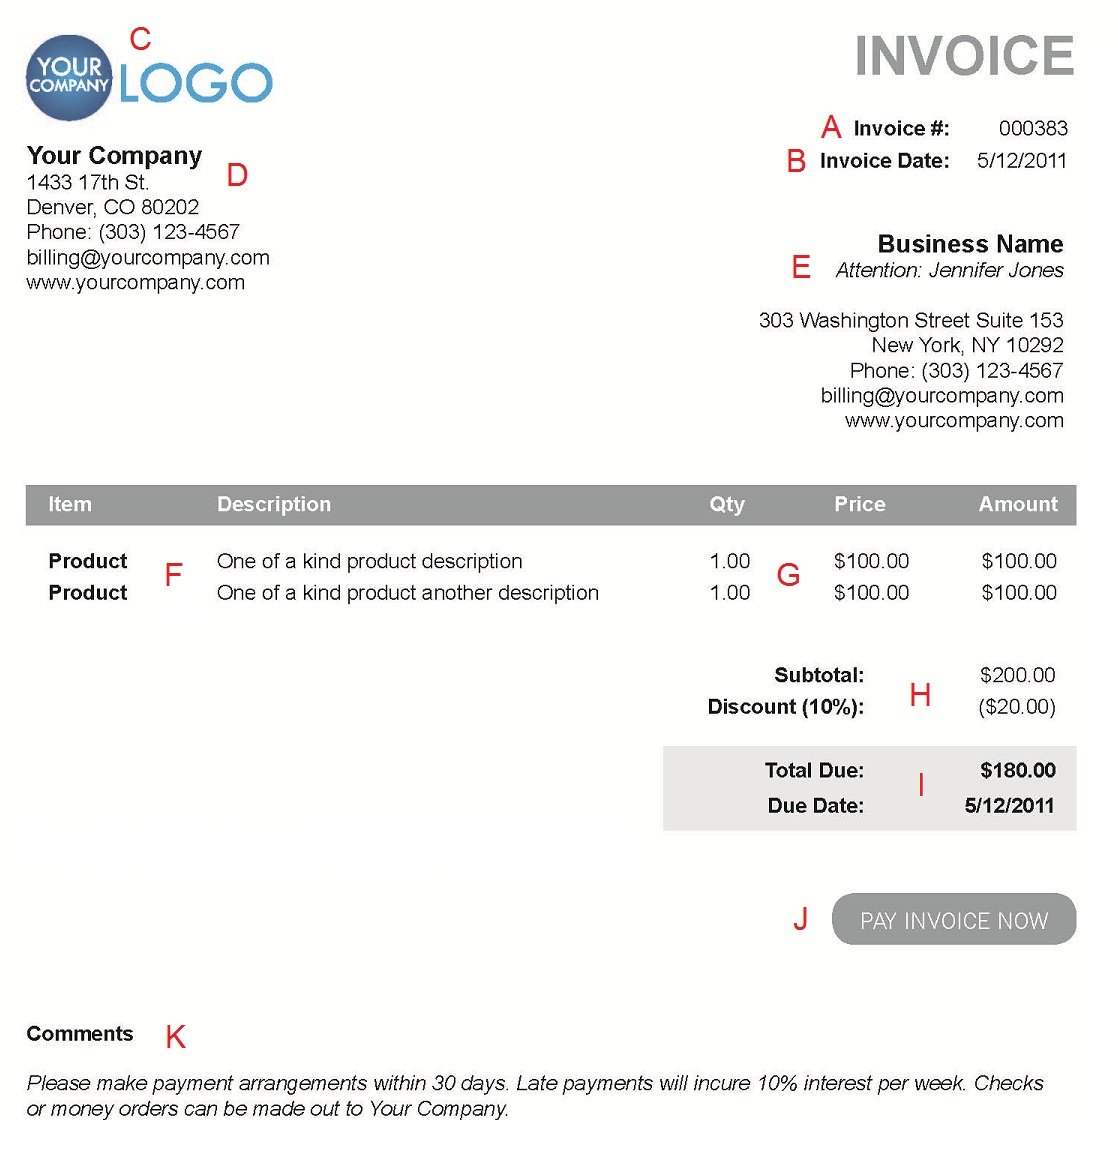 Pigbrotherus  Unusual The  Different Sections Of An Electronic Payment Invoice With Gorgeous A  With Divine Paypal Invoice Fee Also Vat Invoice In Addition What Is An Invoice Number And Whats An Invoice As Well As How To Delete An Invoice In Quickbooks Additionally Dealer Invoice Price From Paysimplecom With Pigbrotherus  Gorgeous The  Different Sections Of An Electronic Payment Invoice With Divine A  And Unusual Paypal Invoice Fee Also Vat Invoice In Addition What Is An Invoice Number From Paysimplecom